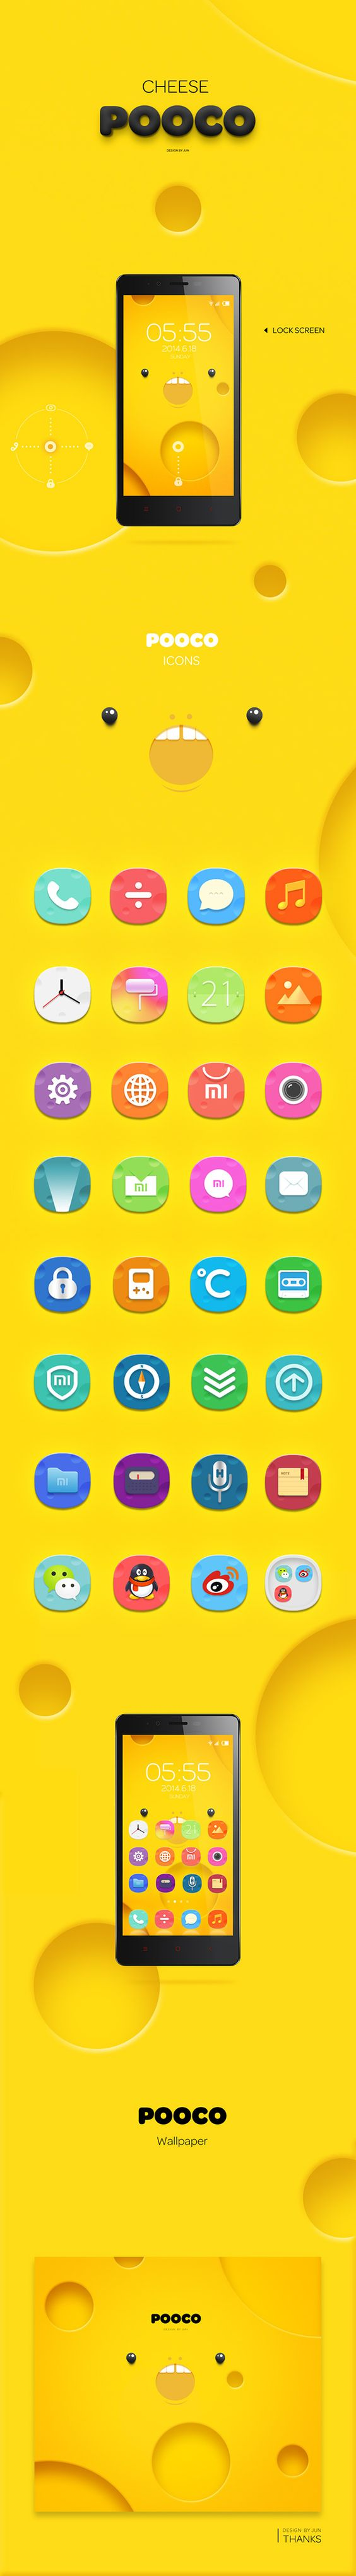 miui design , do you like cheese pooco? on Behance